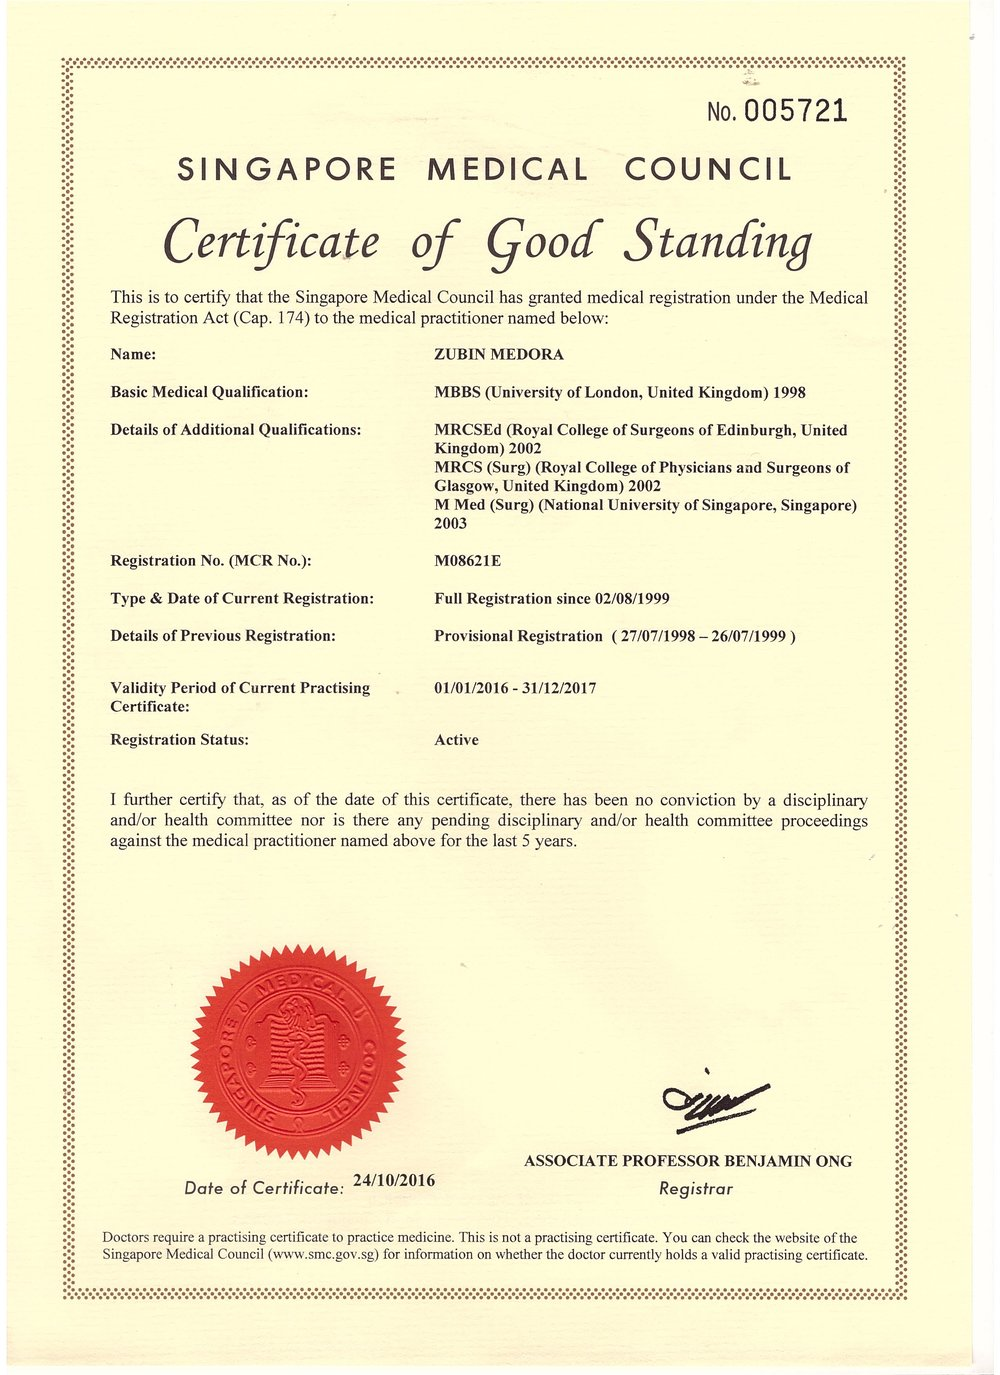 SMC - Certificate of Good Standing 001.jpg